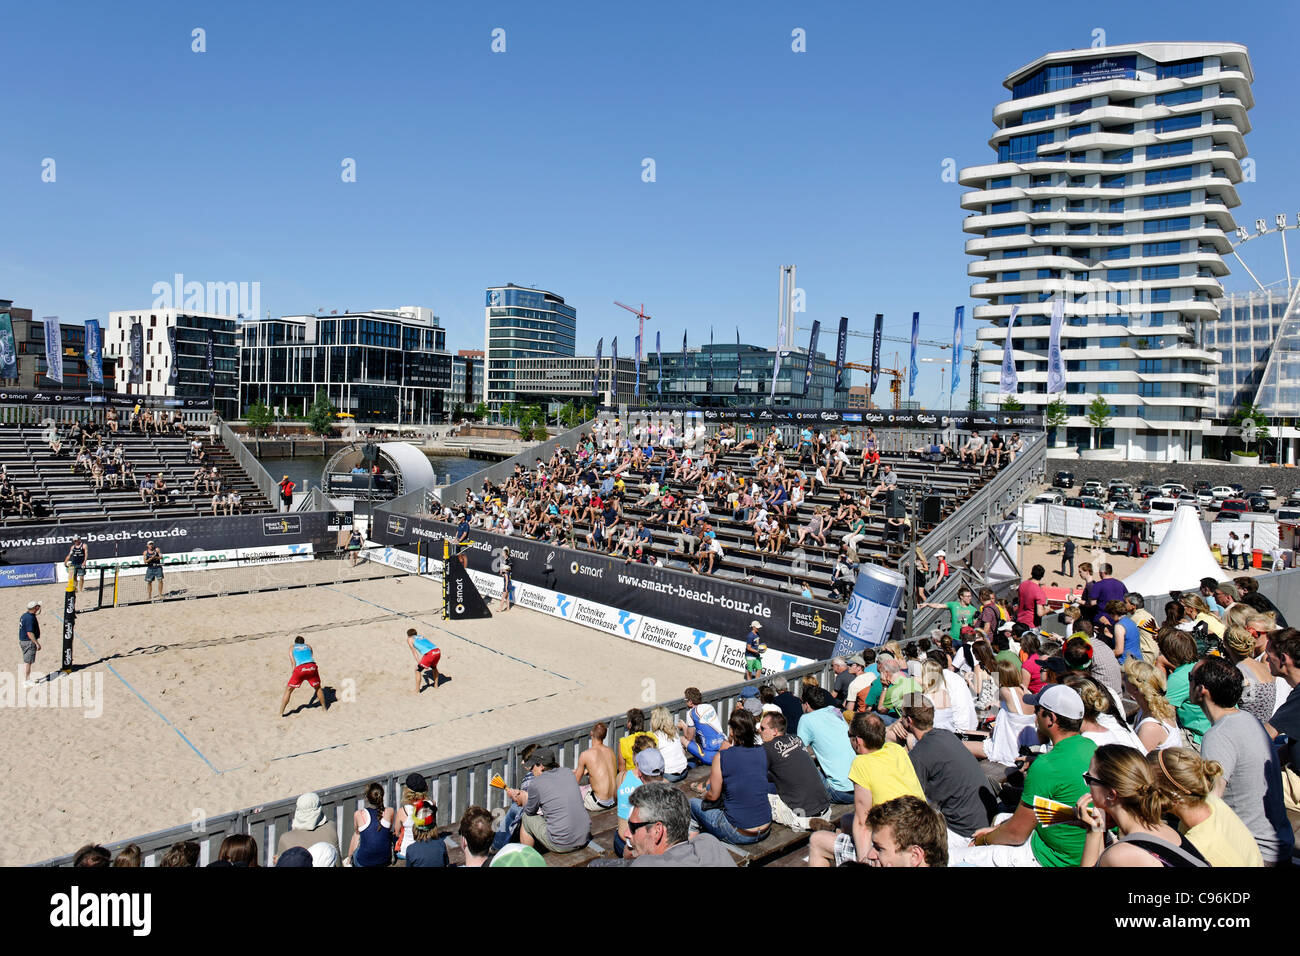 Beach Volleyball Contest in Front of Marco-Polo-Tower and the Unilever headquarters on the Strandkai quay, Hamburg - Stock Image